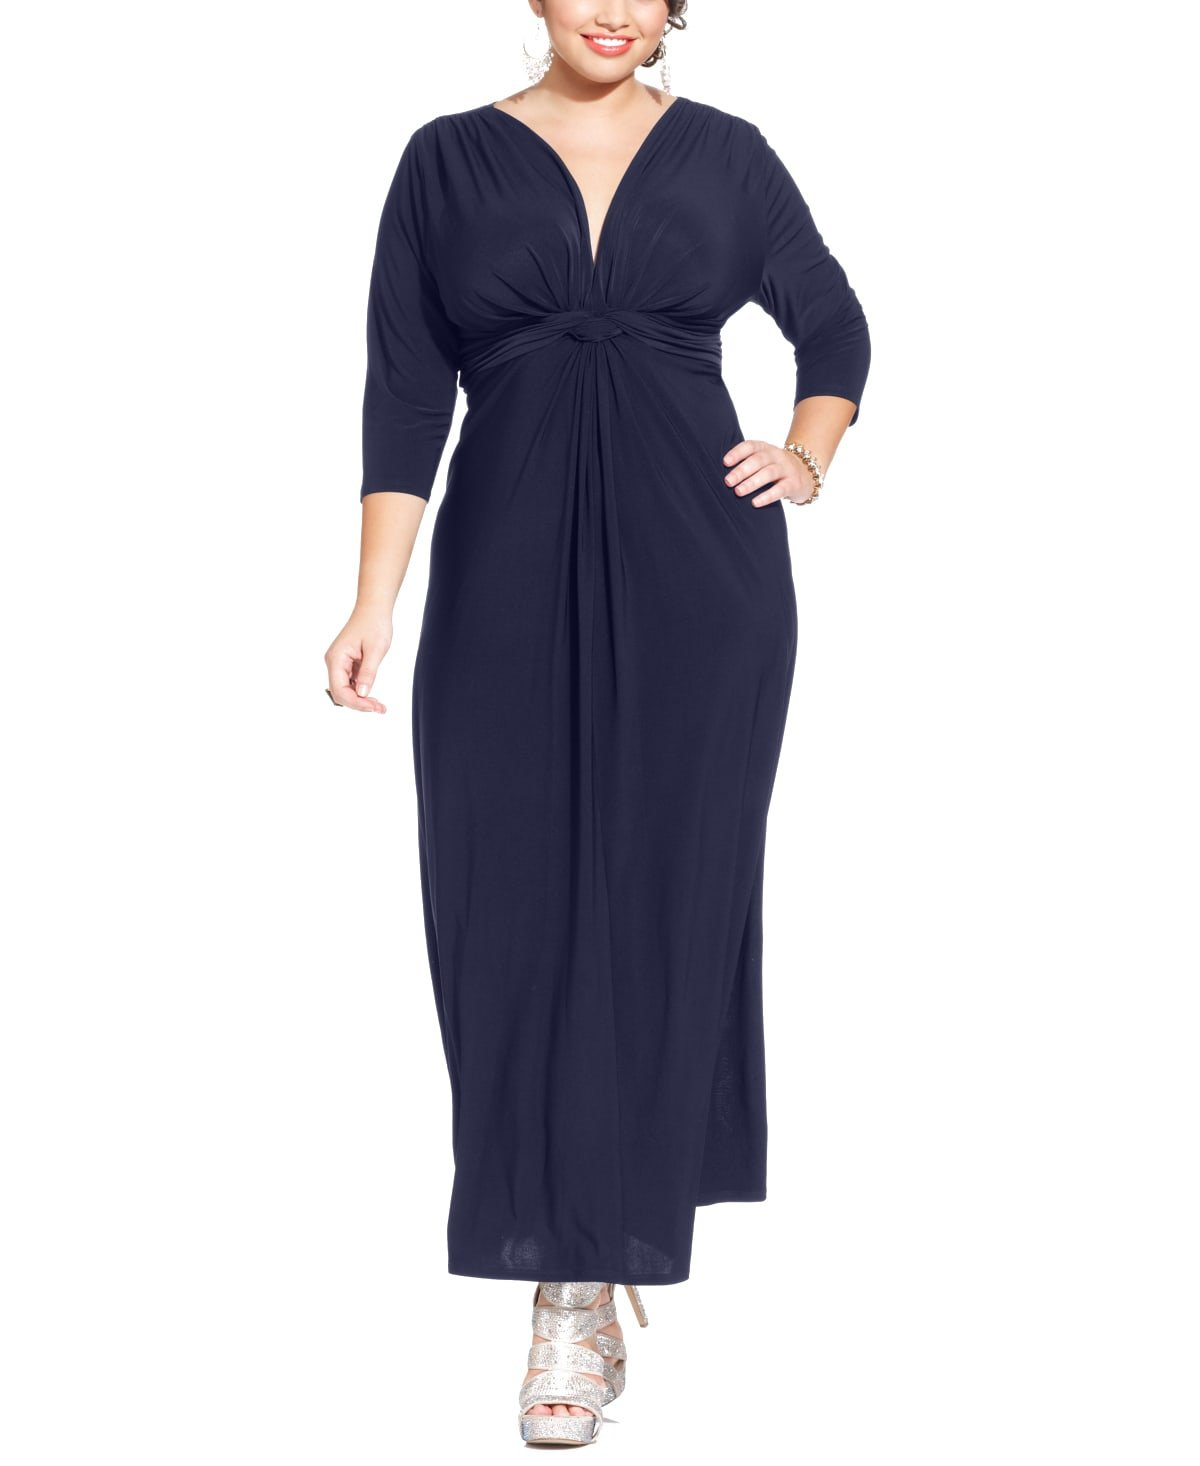 Love Squared Womens Plus-Size Three-Quarter-Sleeve Knotted Maxi Dress Navy 1X